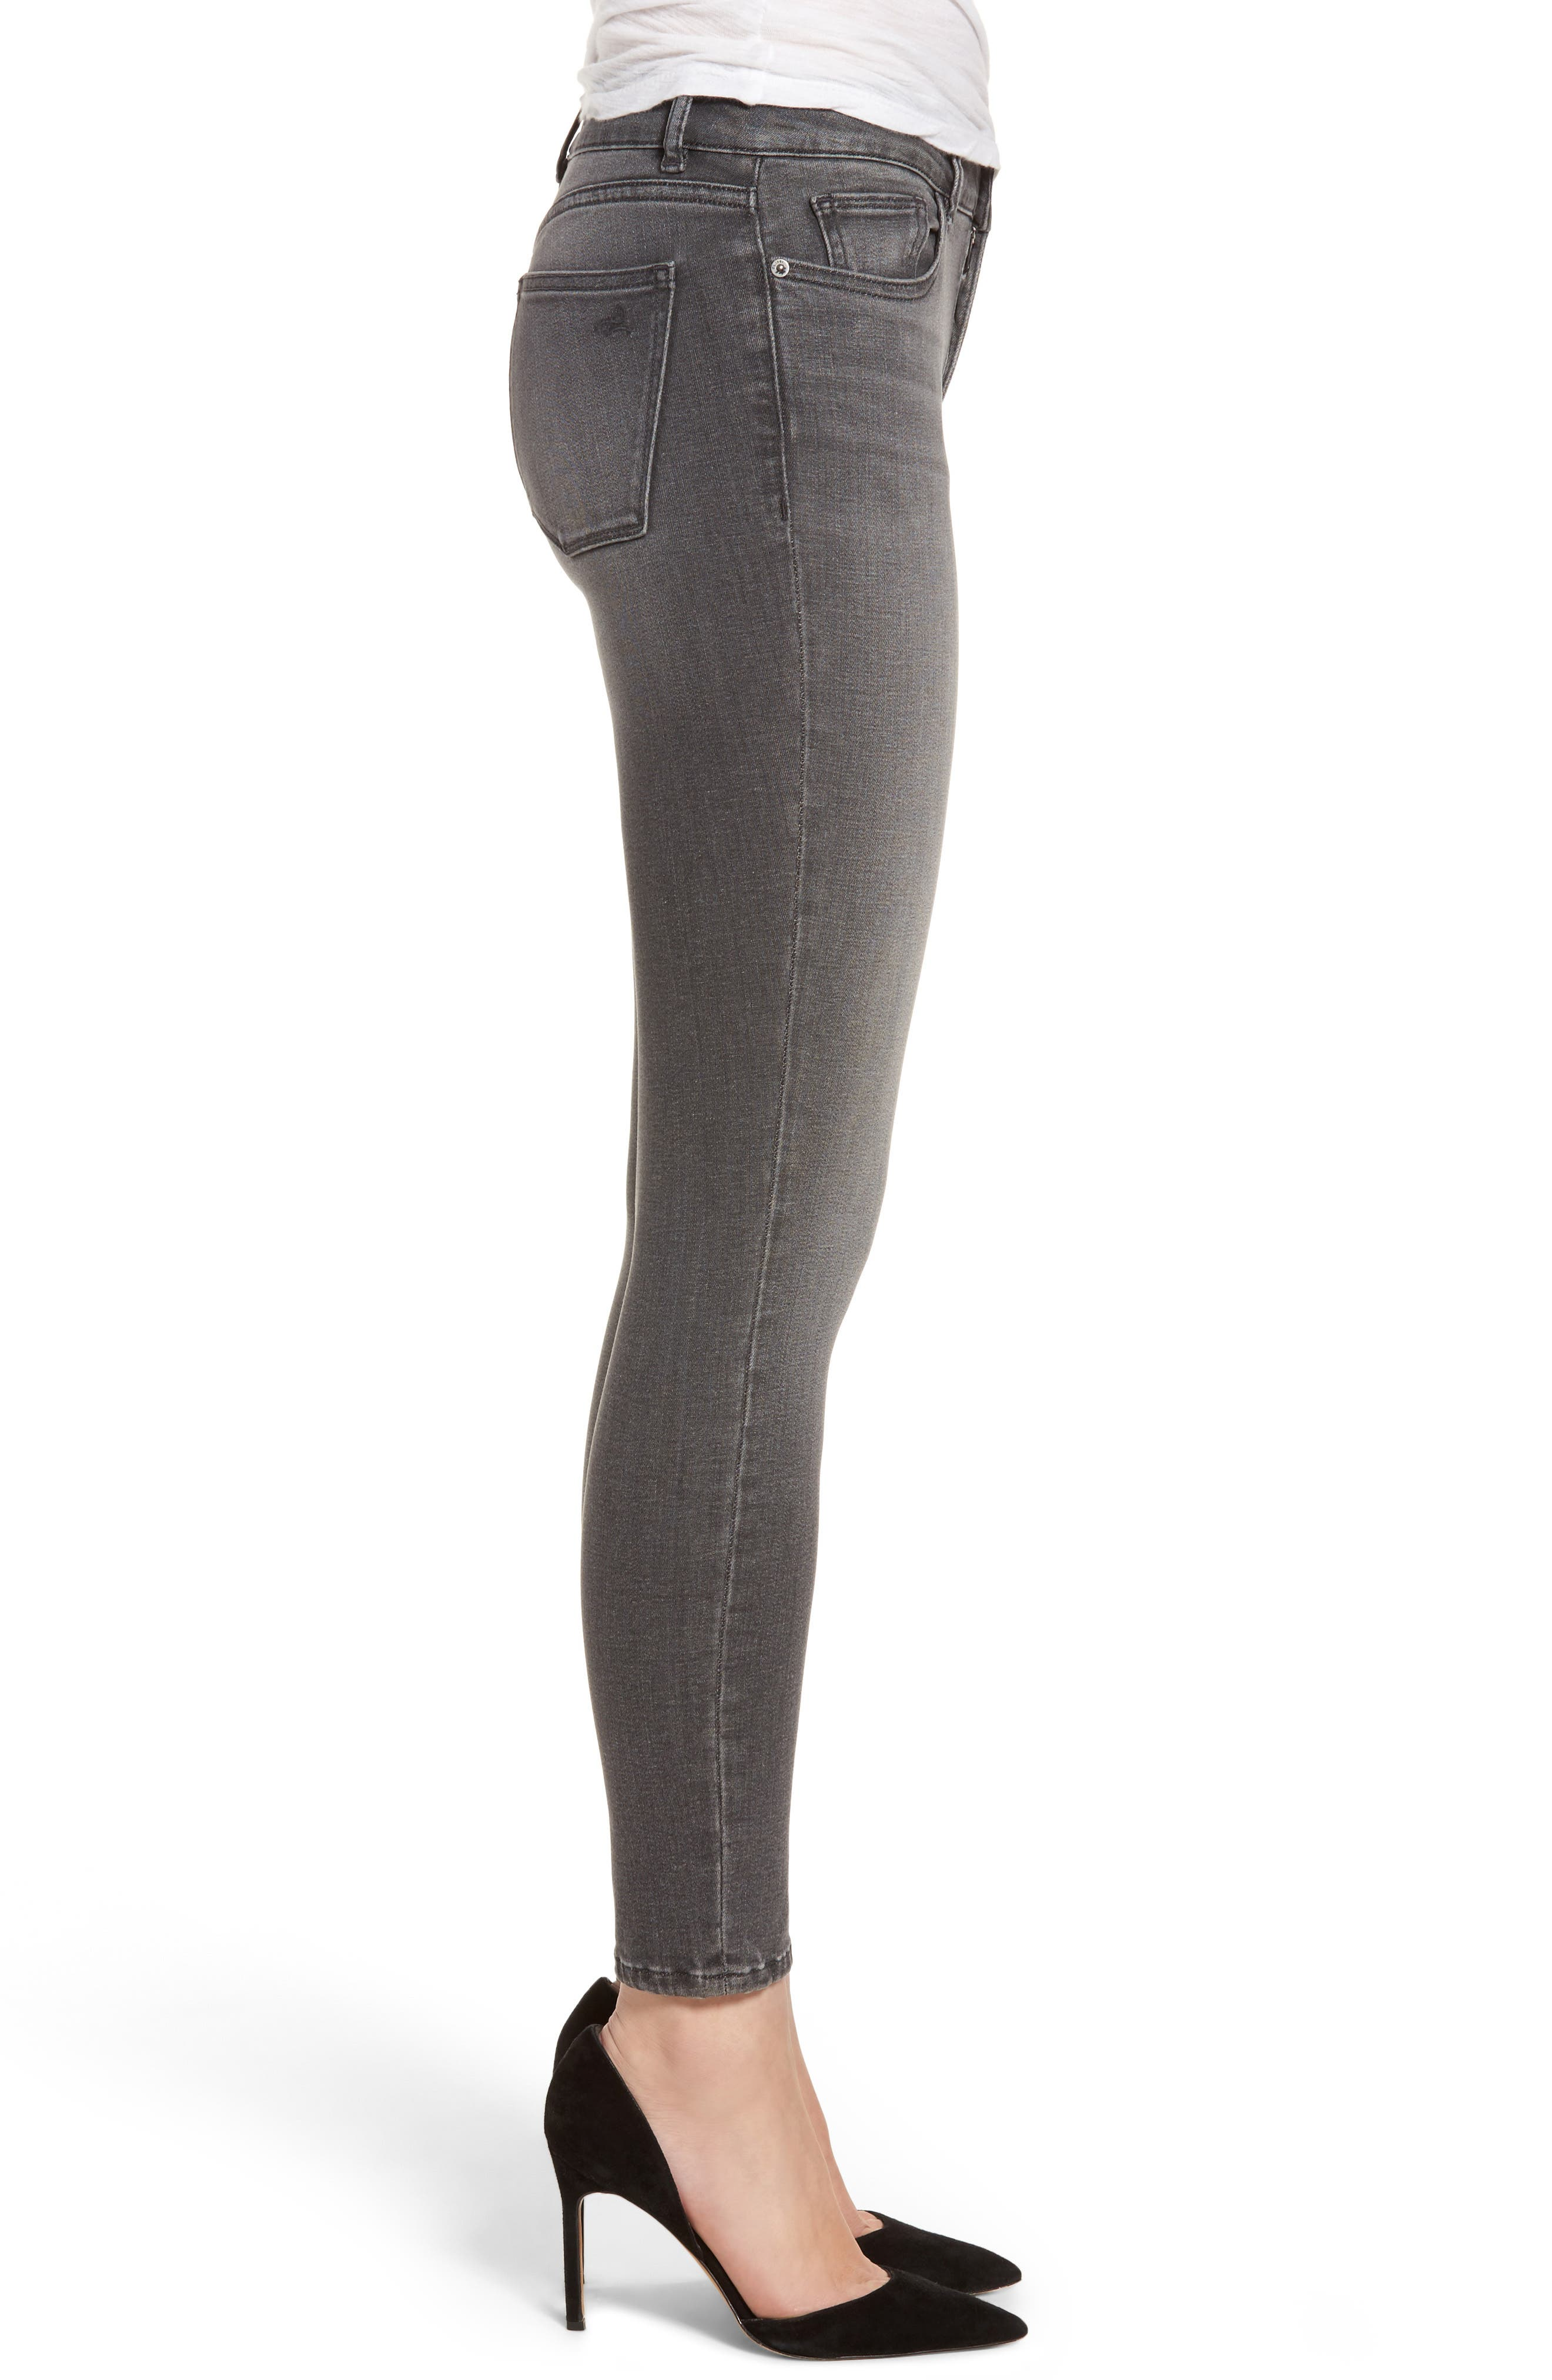 Alternate Image 3  - DL1961 Margaux Instasculpt Ankle Skinny Jeans (Drizzle)